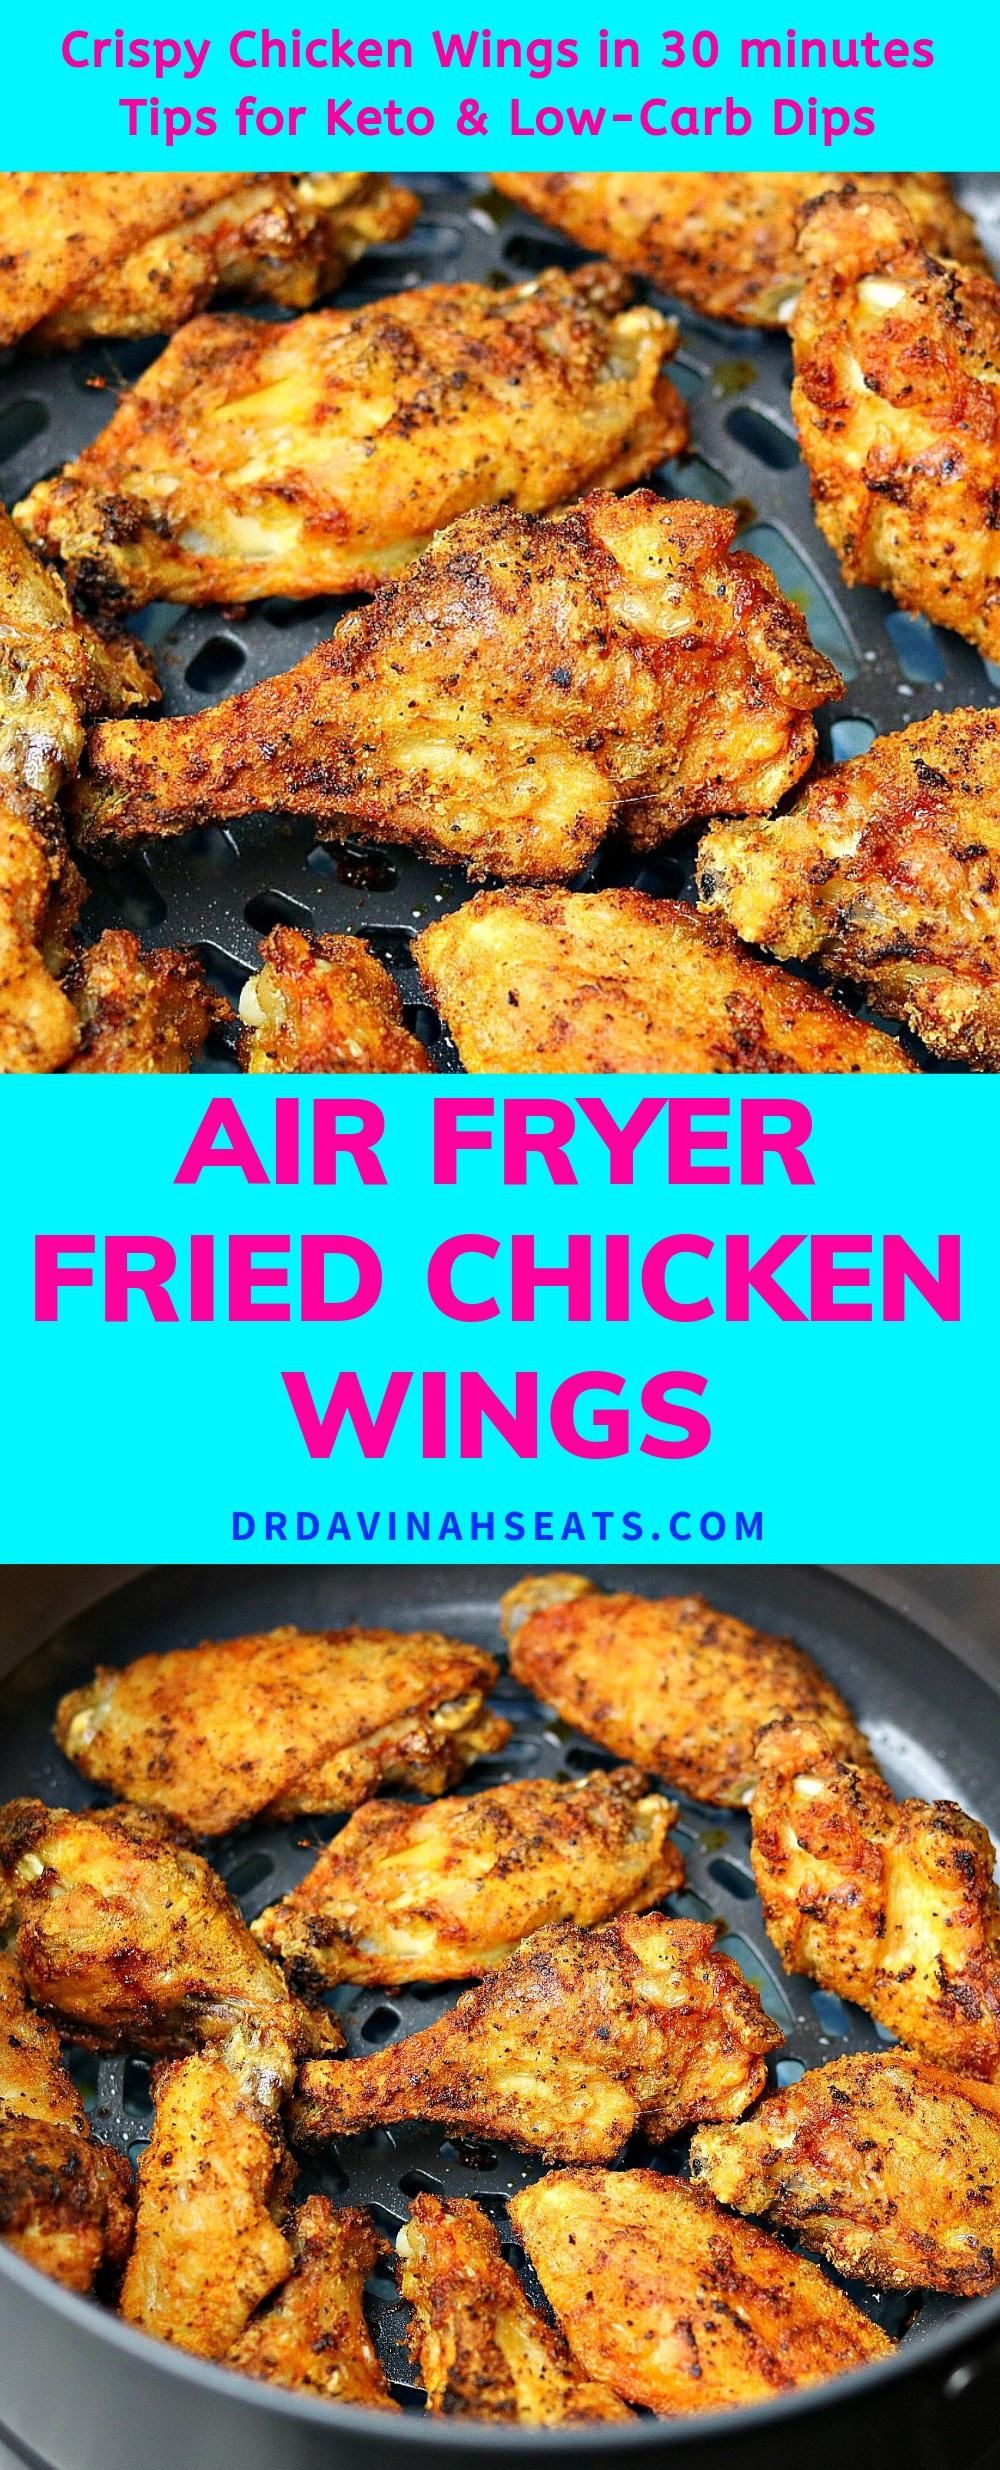 Make crispy air fryer chicken wings in 30 minutes without